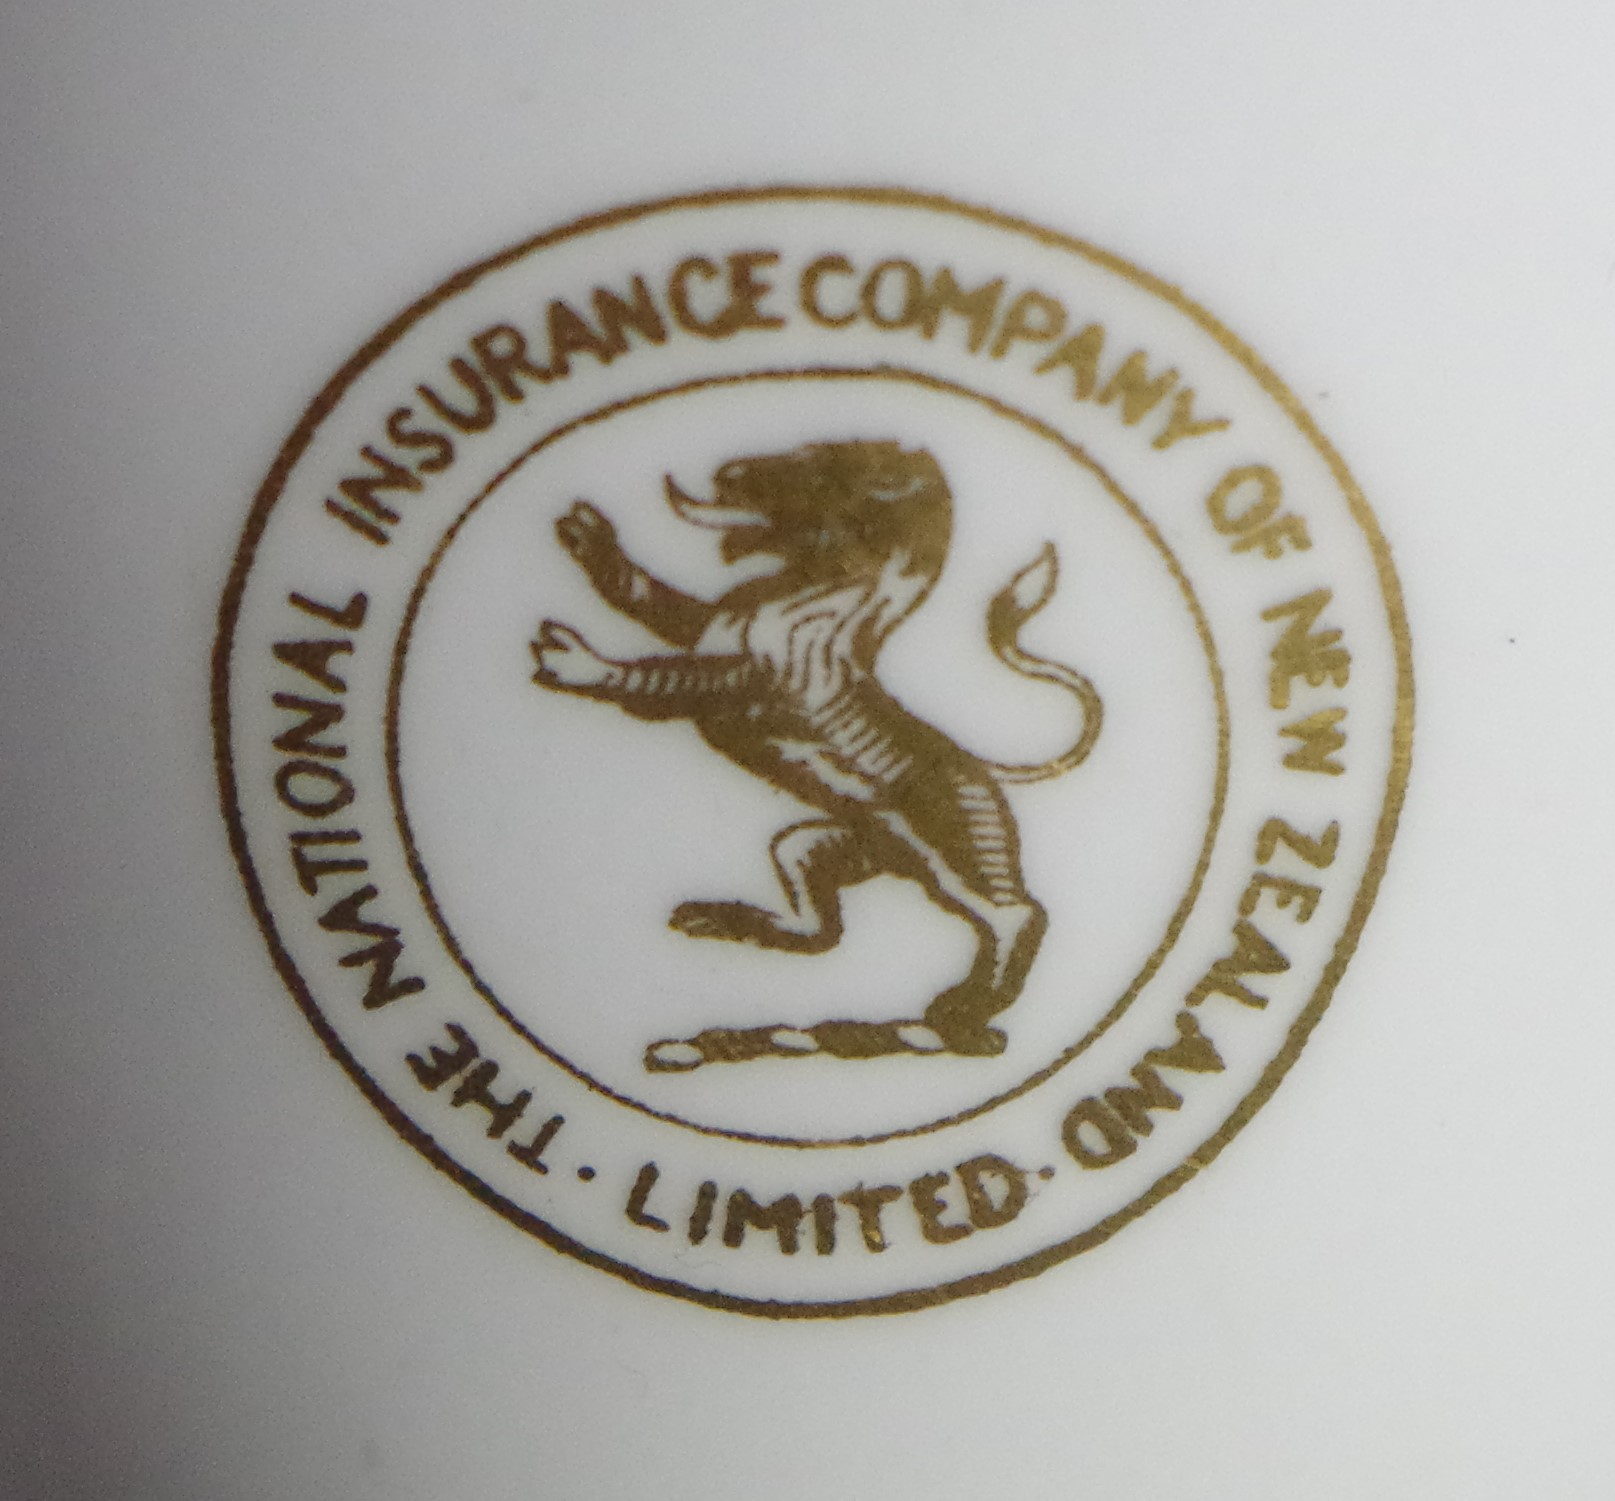 royal-crown-derby-silver-shape-the-national-insurance-company-of-new-zealand-ltd-logo